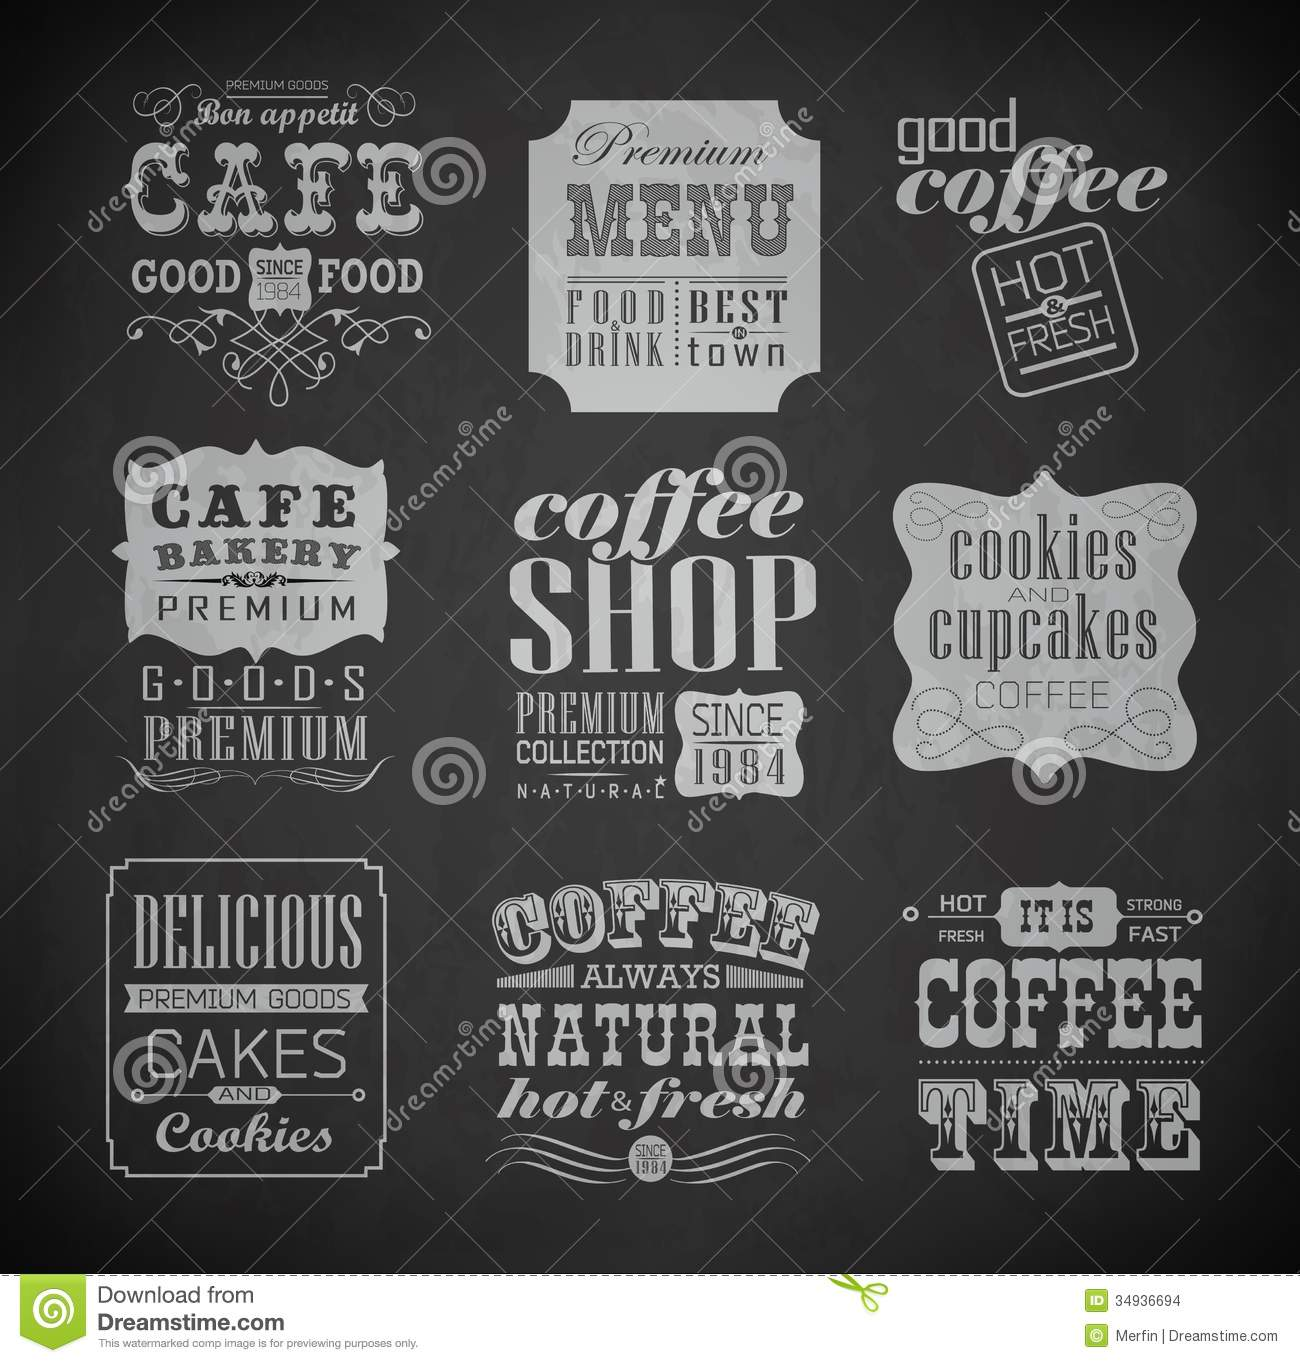 Bakery Coffee Shop Menu